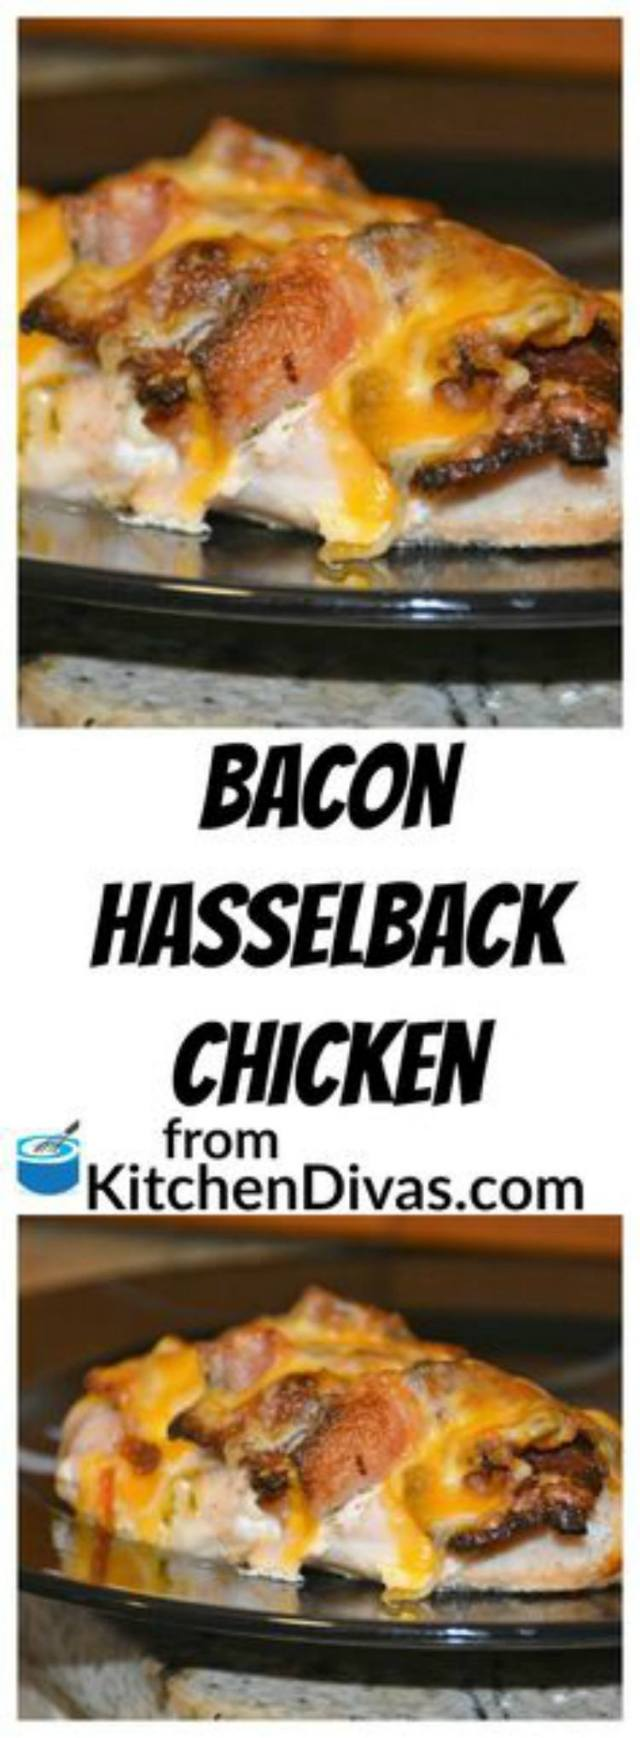 Bacon Hasselback